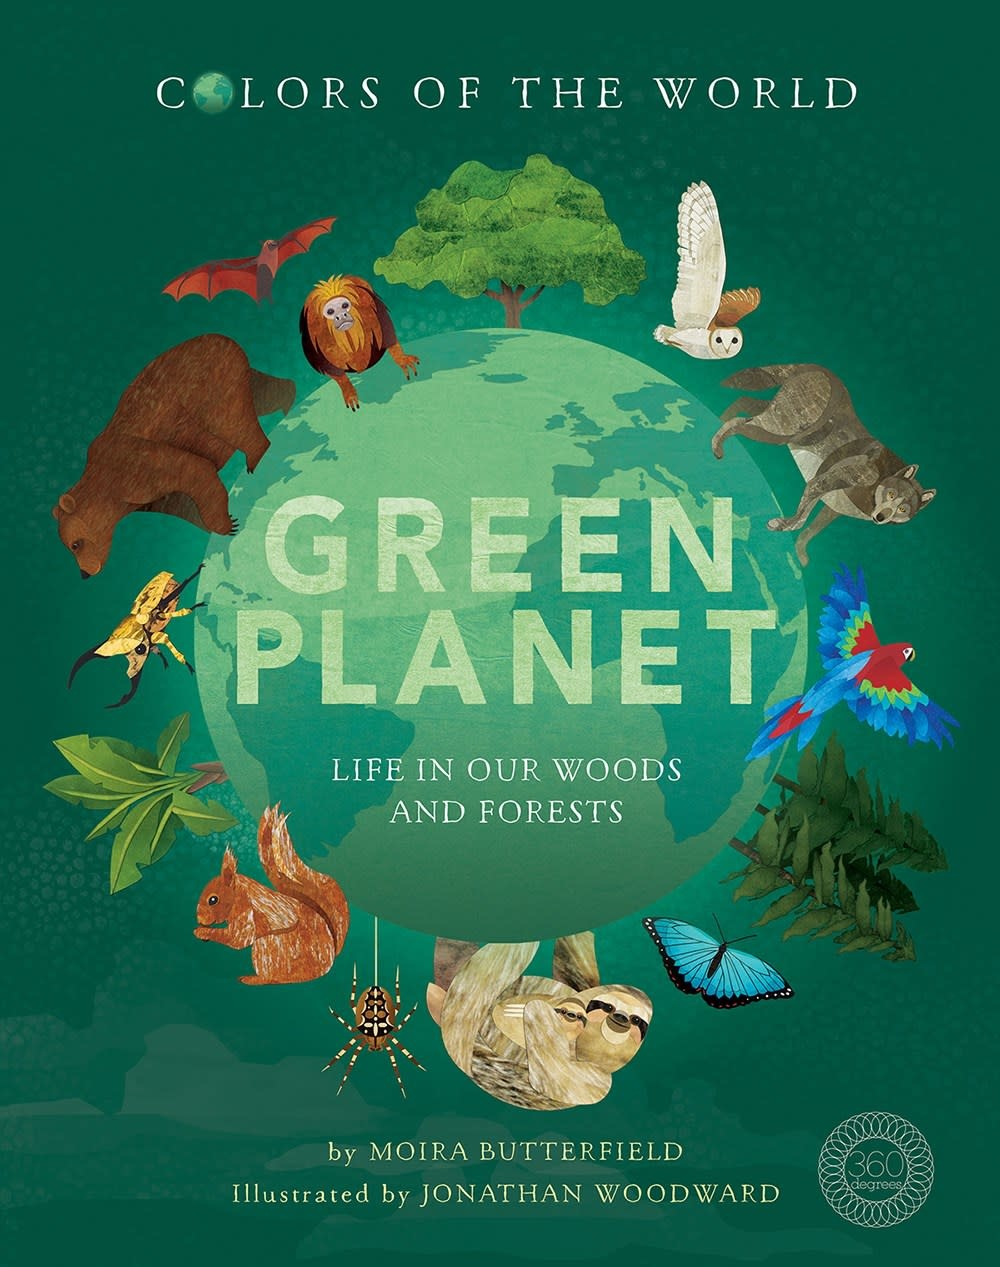 360 Degrees Green Planet: Life in Our Woods and Forests